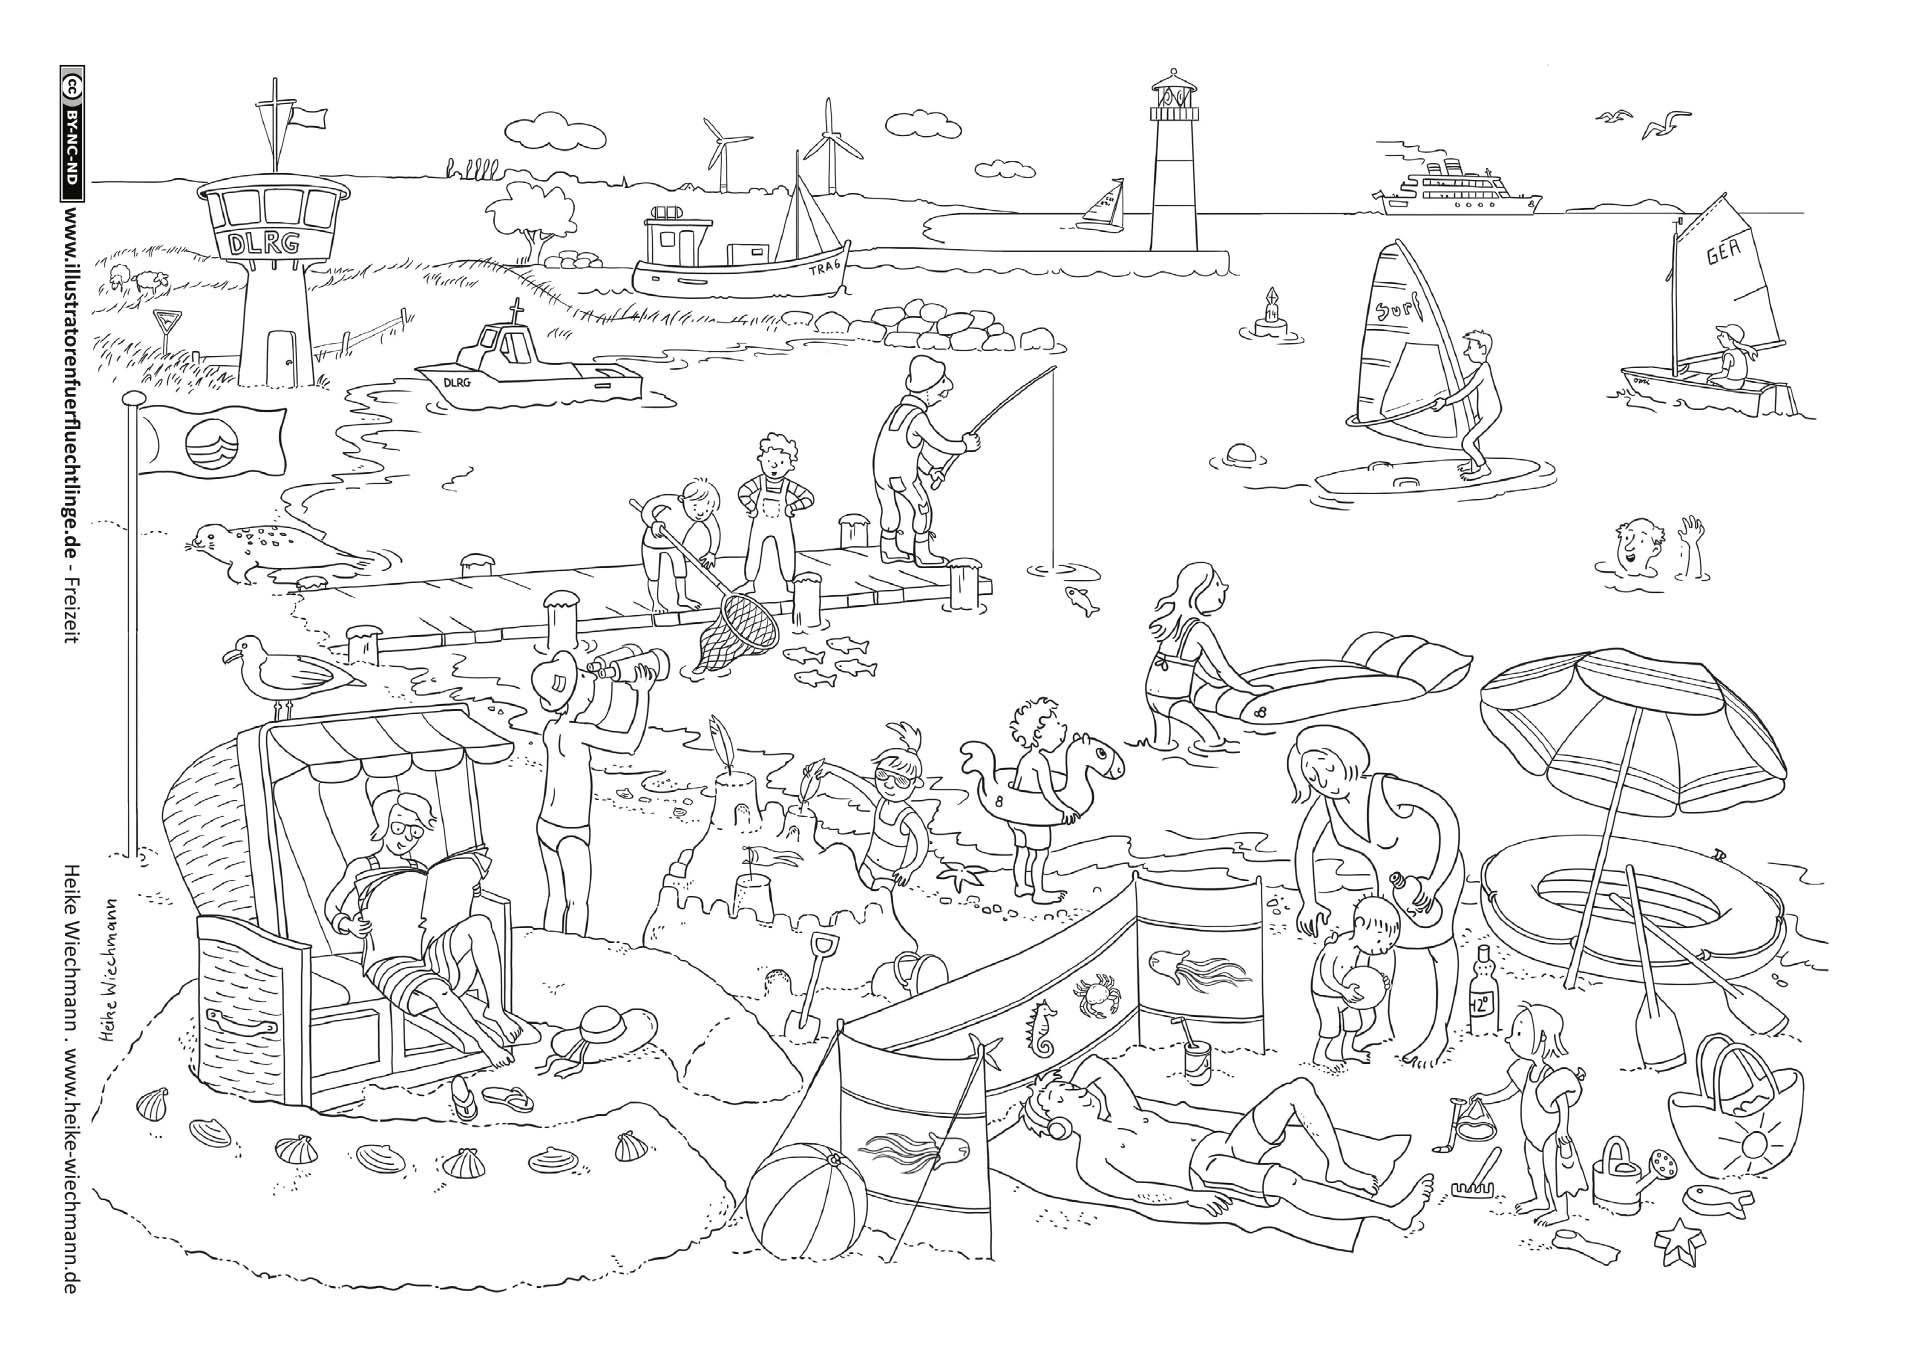 Meer Strand Coloring Pages Coloring Books Picture Illustration